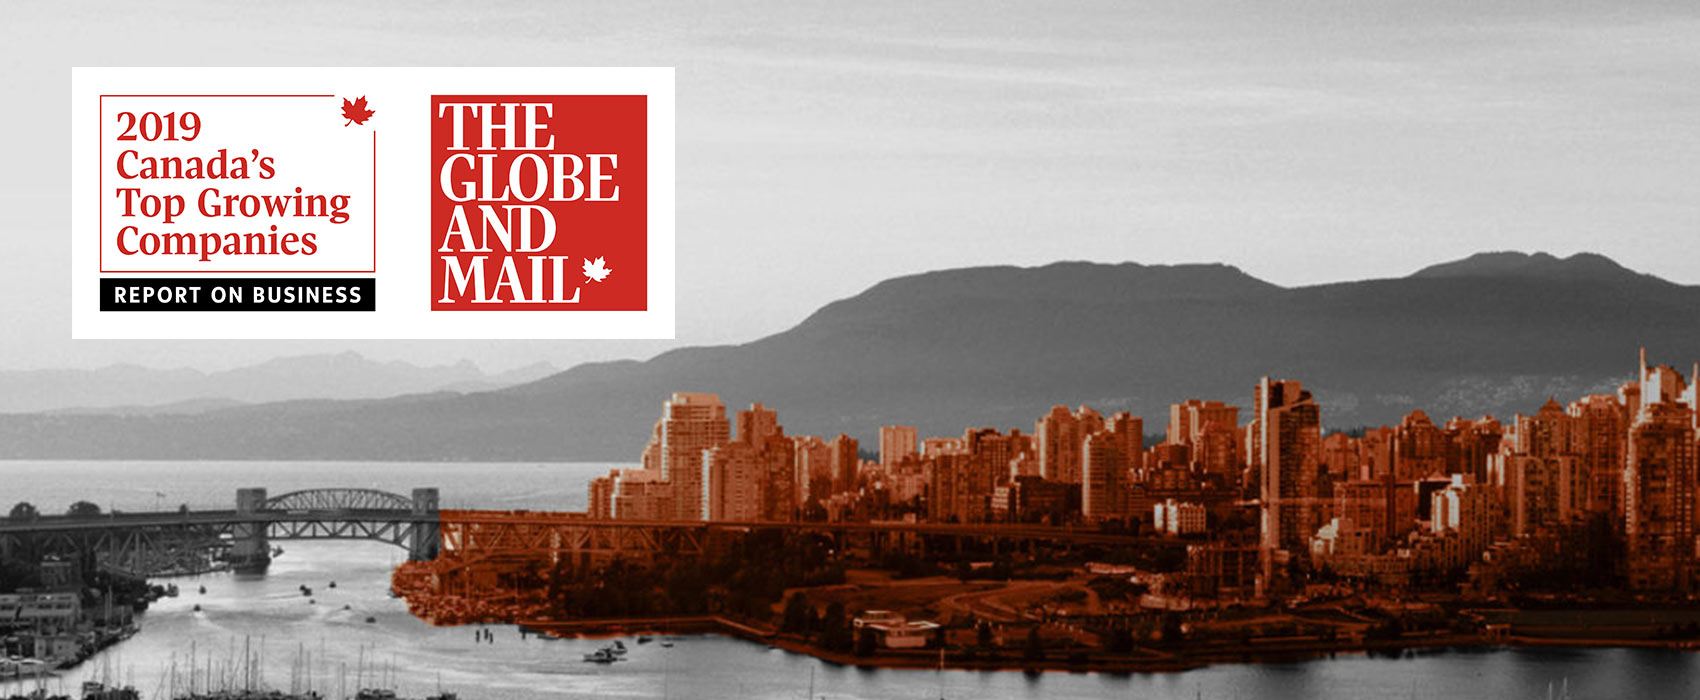 Image for Copperleaf Makes The Globe and Mail's Ranking of Canada's Top Growing Companies